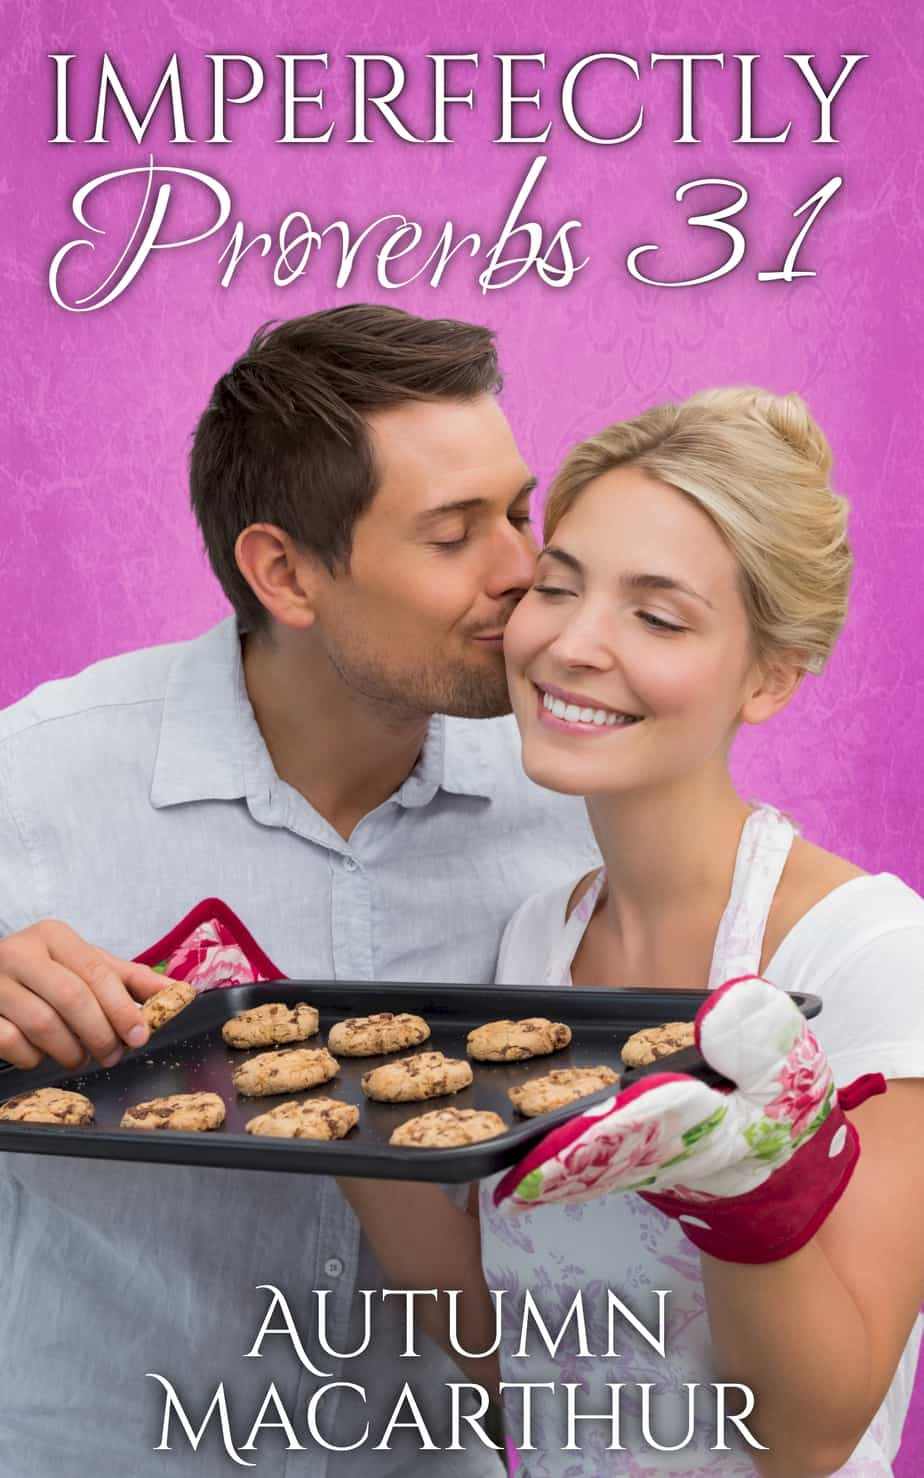 Cover image for sweet and clean Idaho set summer romance novella, Imperfectly Proverbs 31, by Christian author Autumn Macarthur